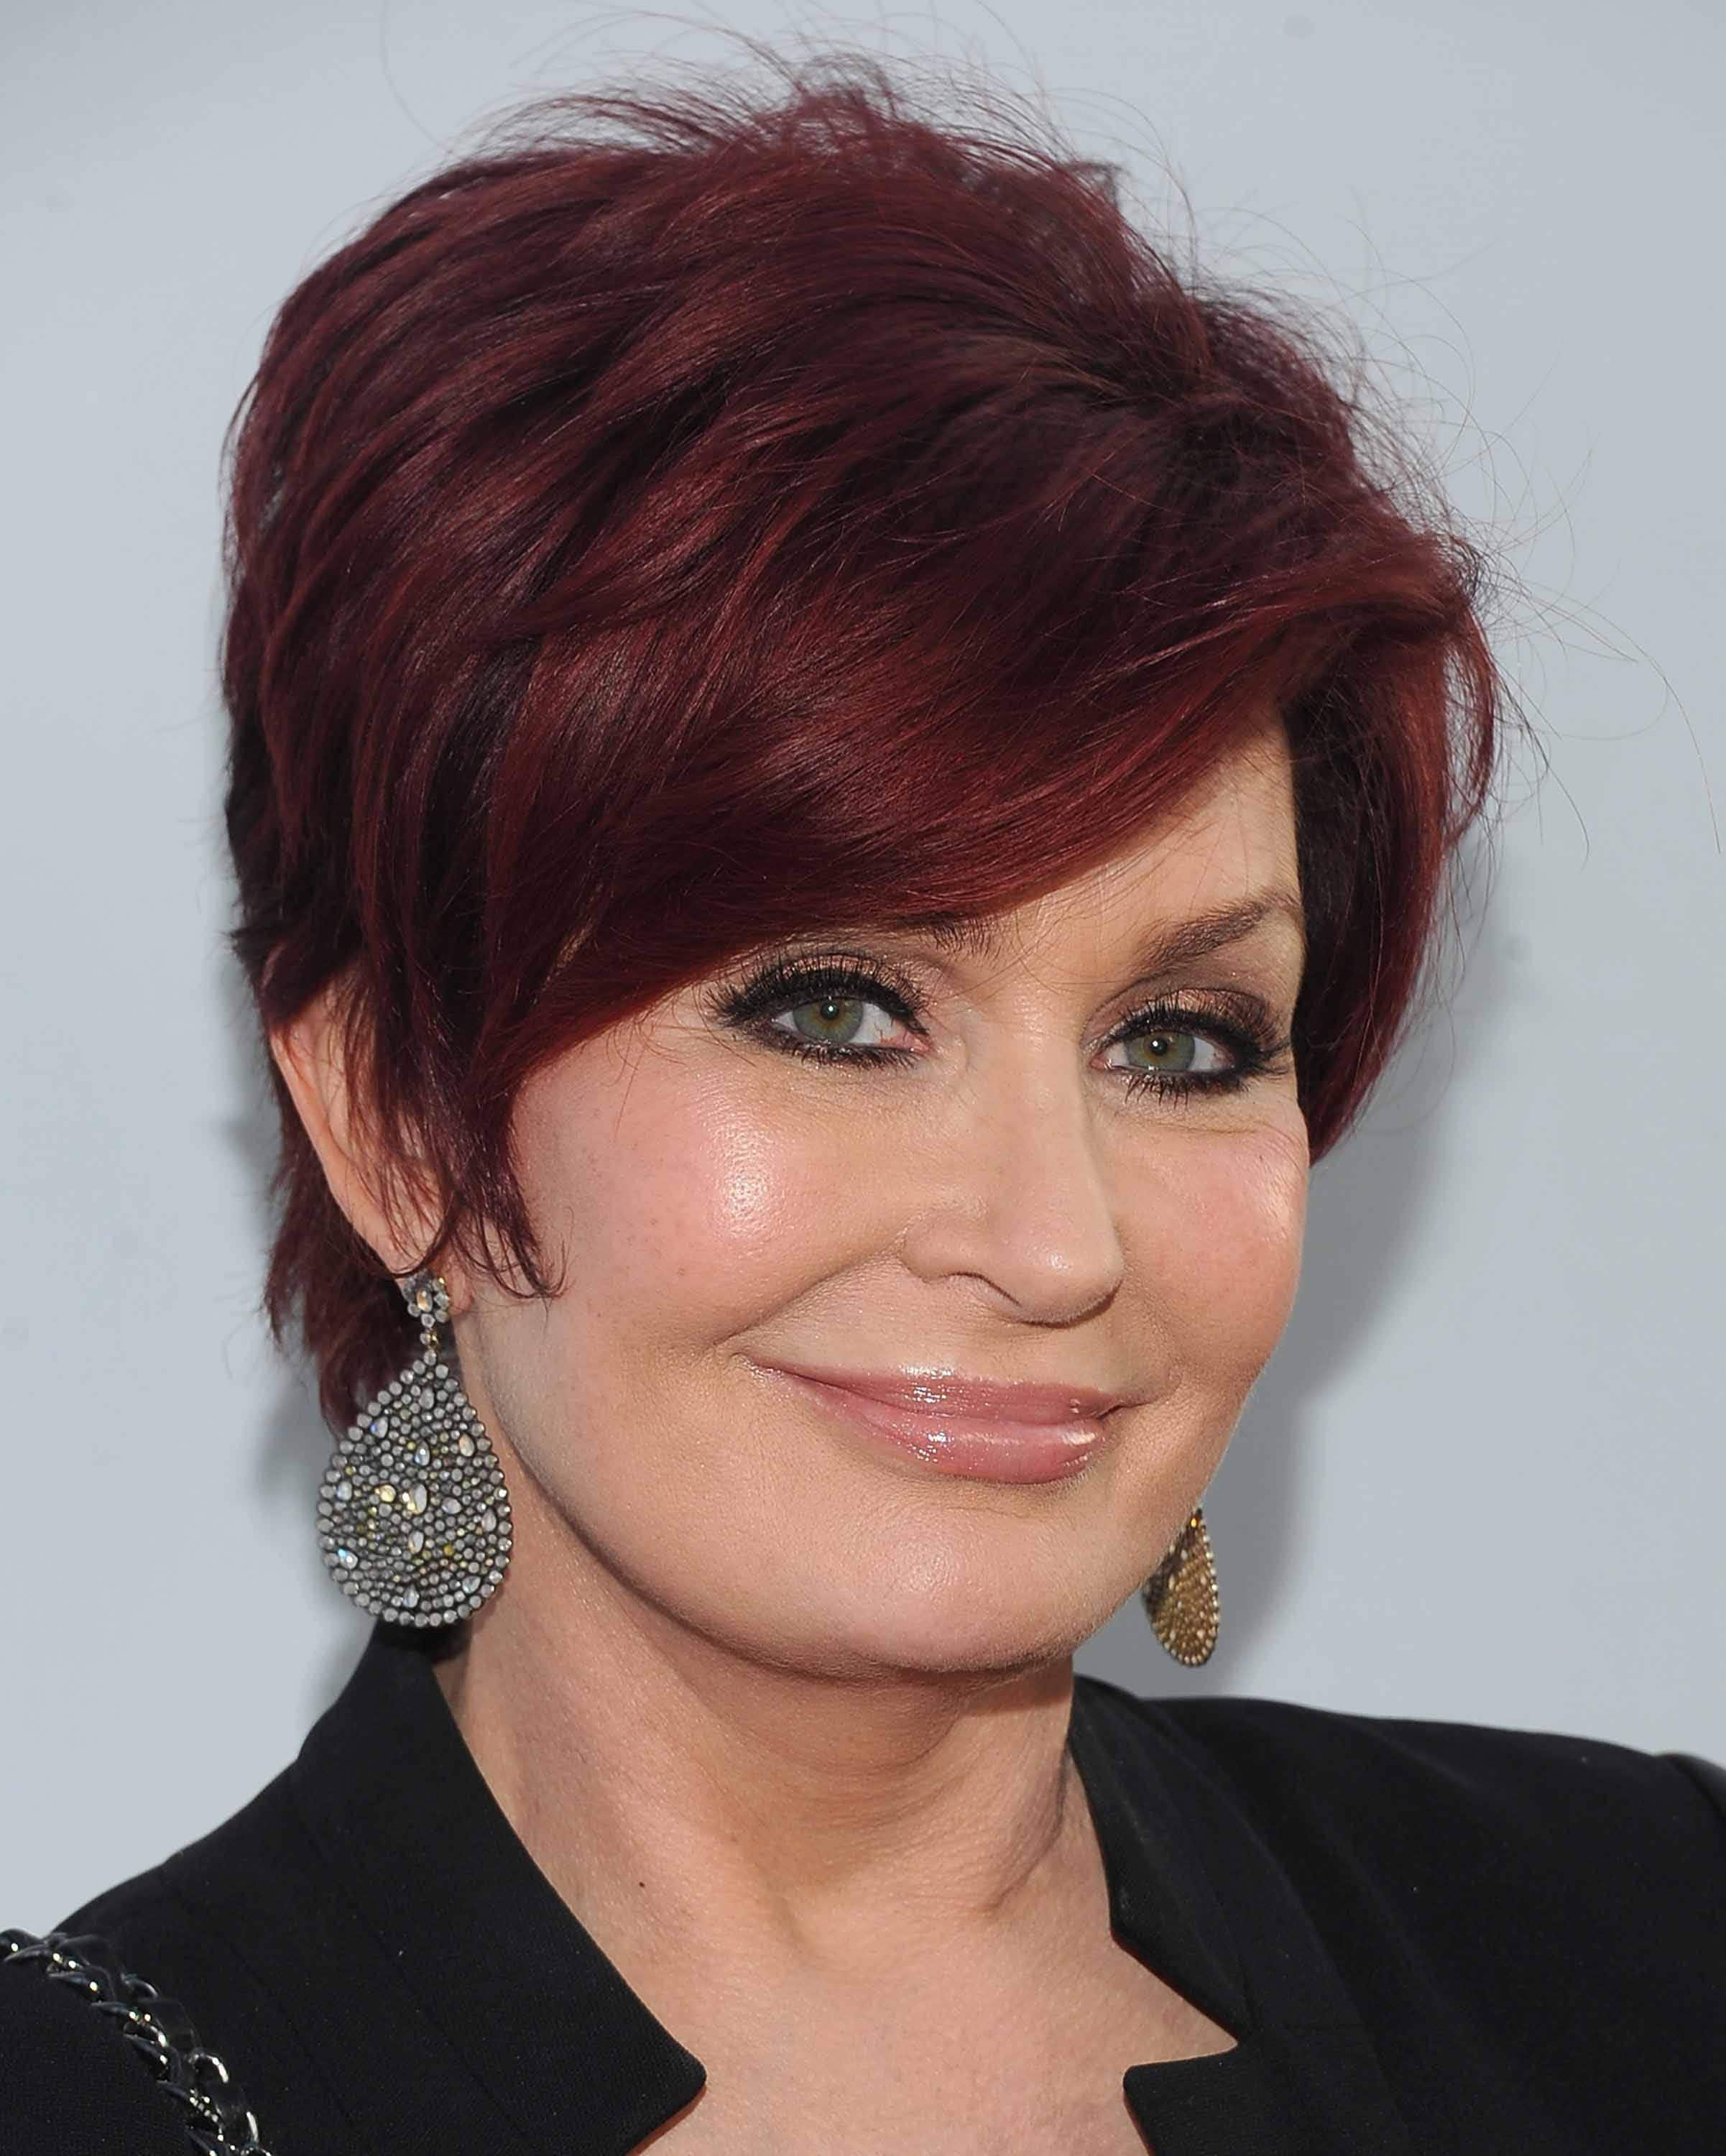 Famous redheads: All Things Hair - IMAGE - Sharon Osbourne red pixie crop